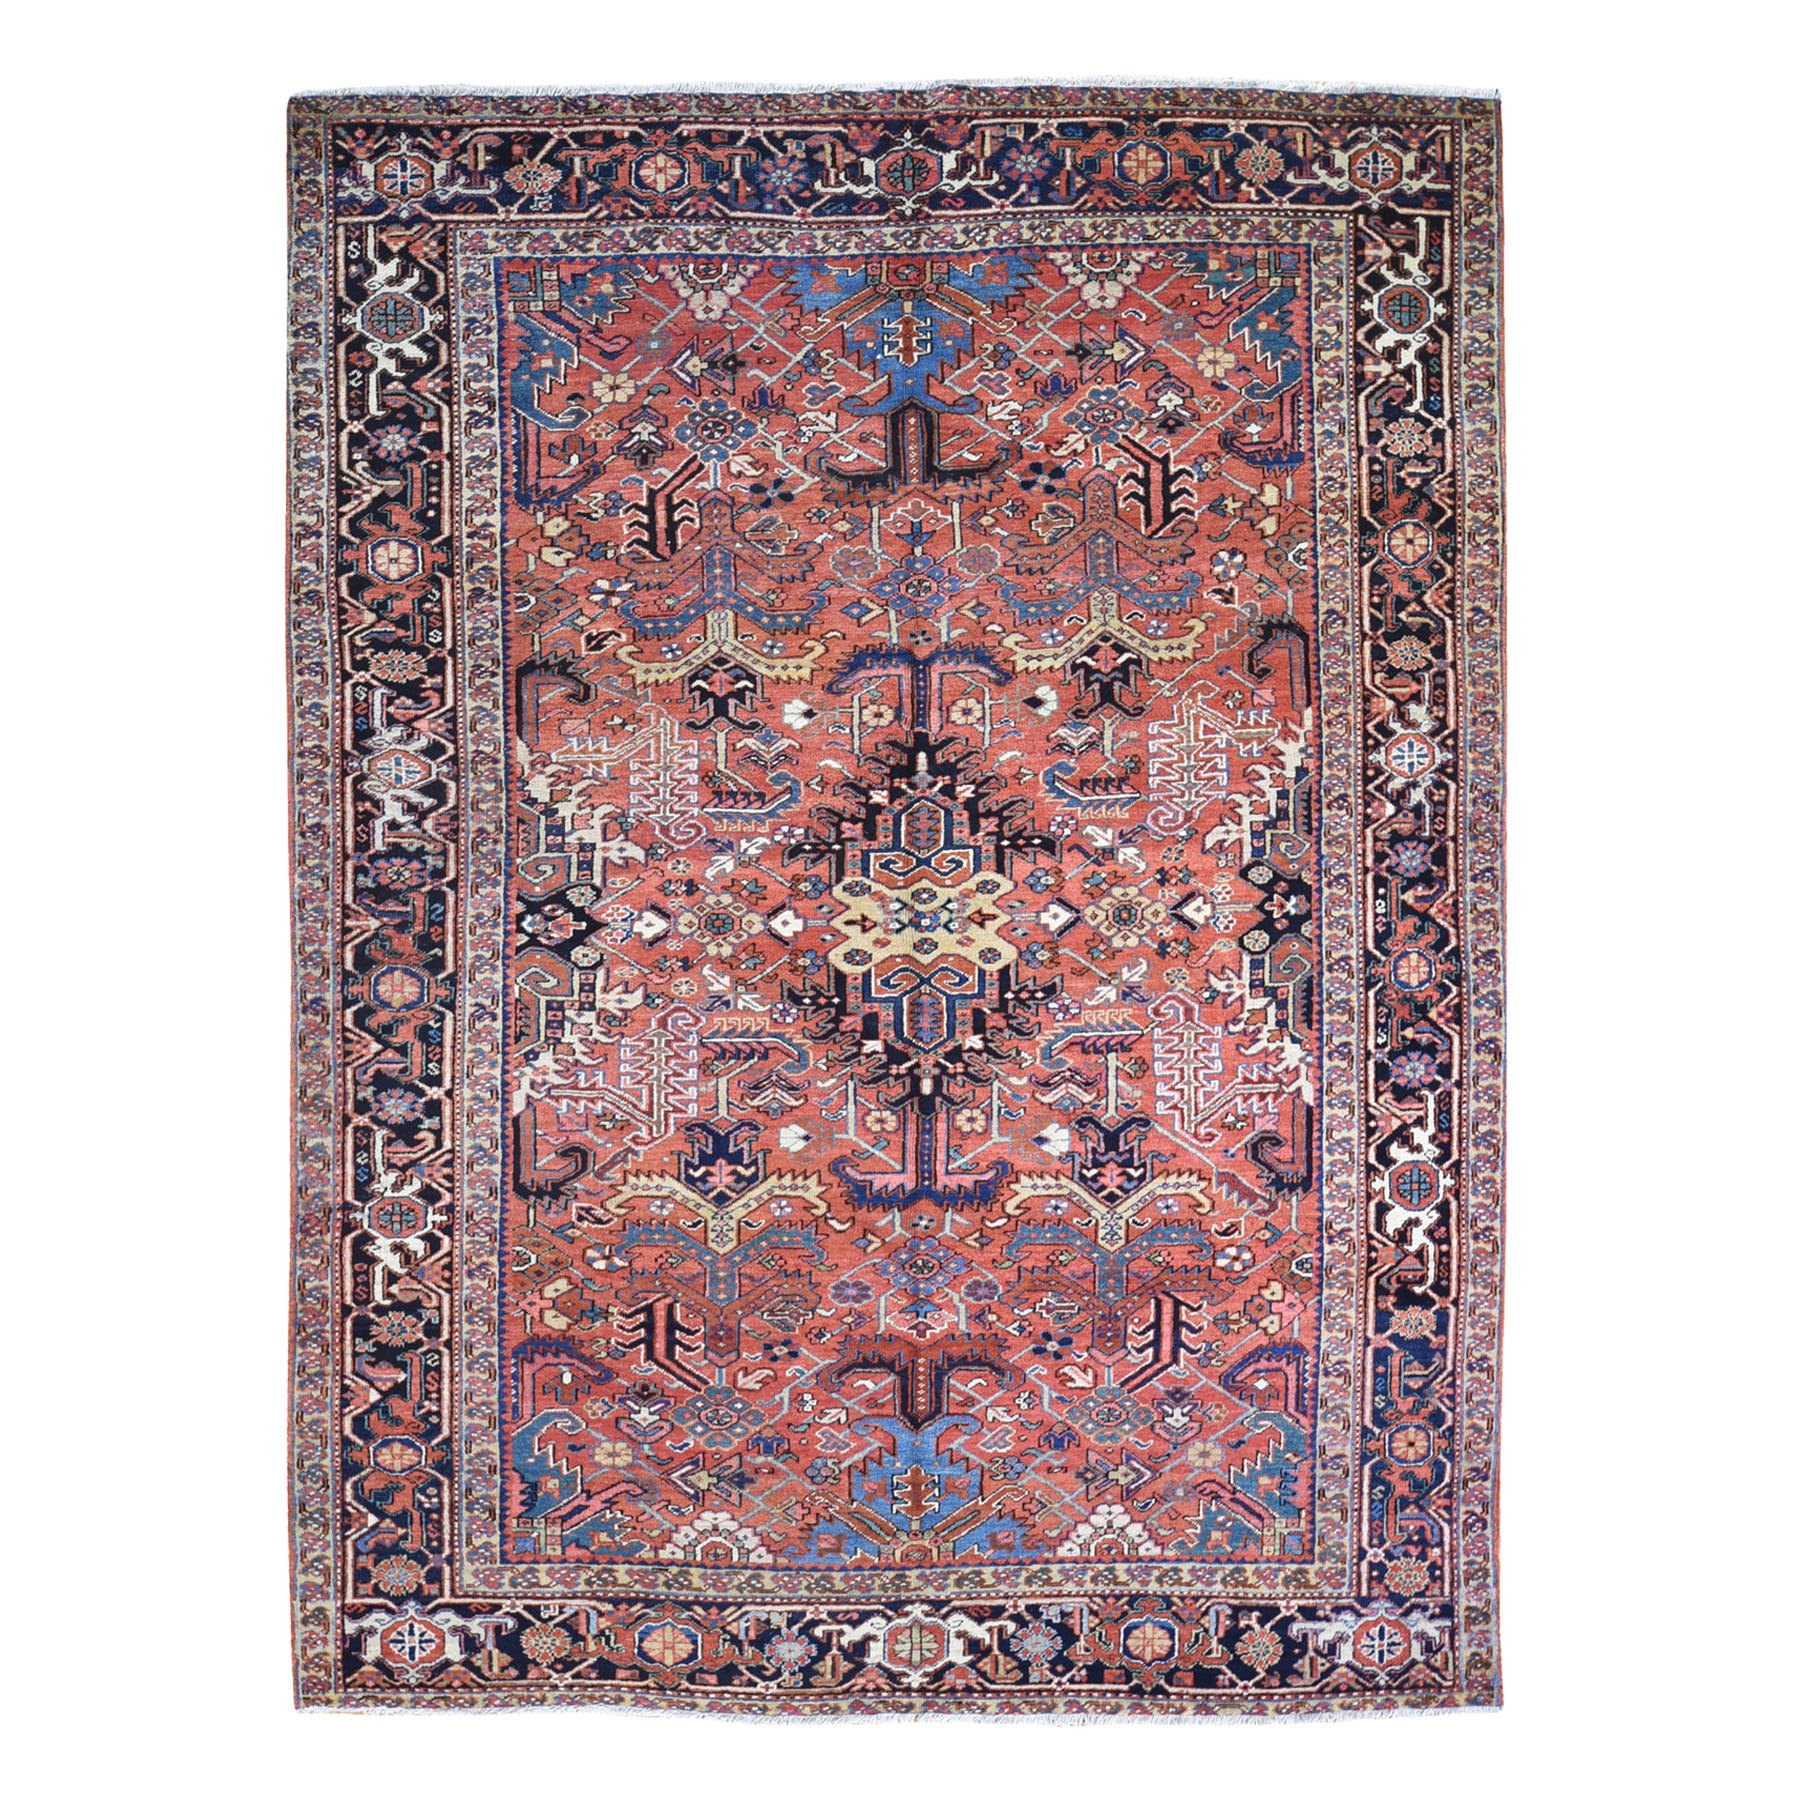 "8'x10'5"" Peach Antique Persian Heriz Full Pile Clean Very Good Condition Pure Wool Hand Knotted Oriental Rug"